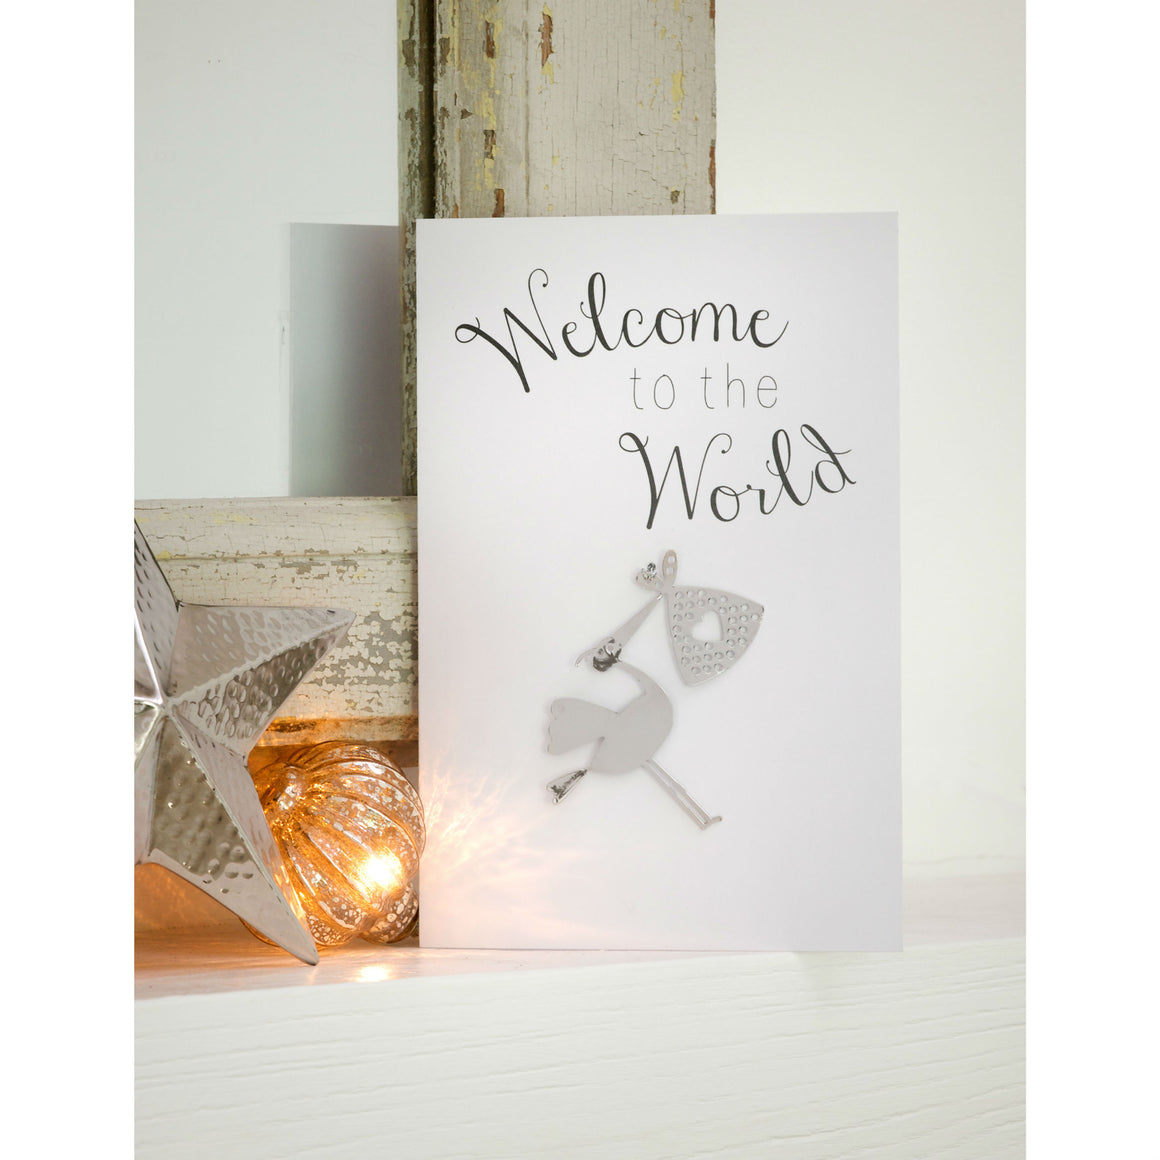 Welcome To The World Greetings Card and Keepsake